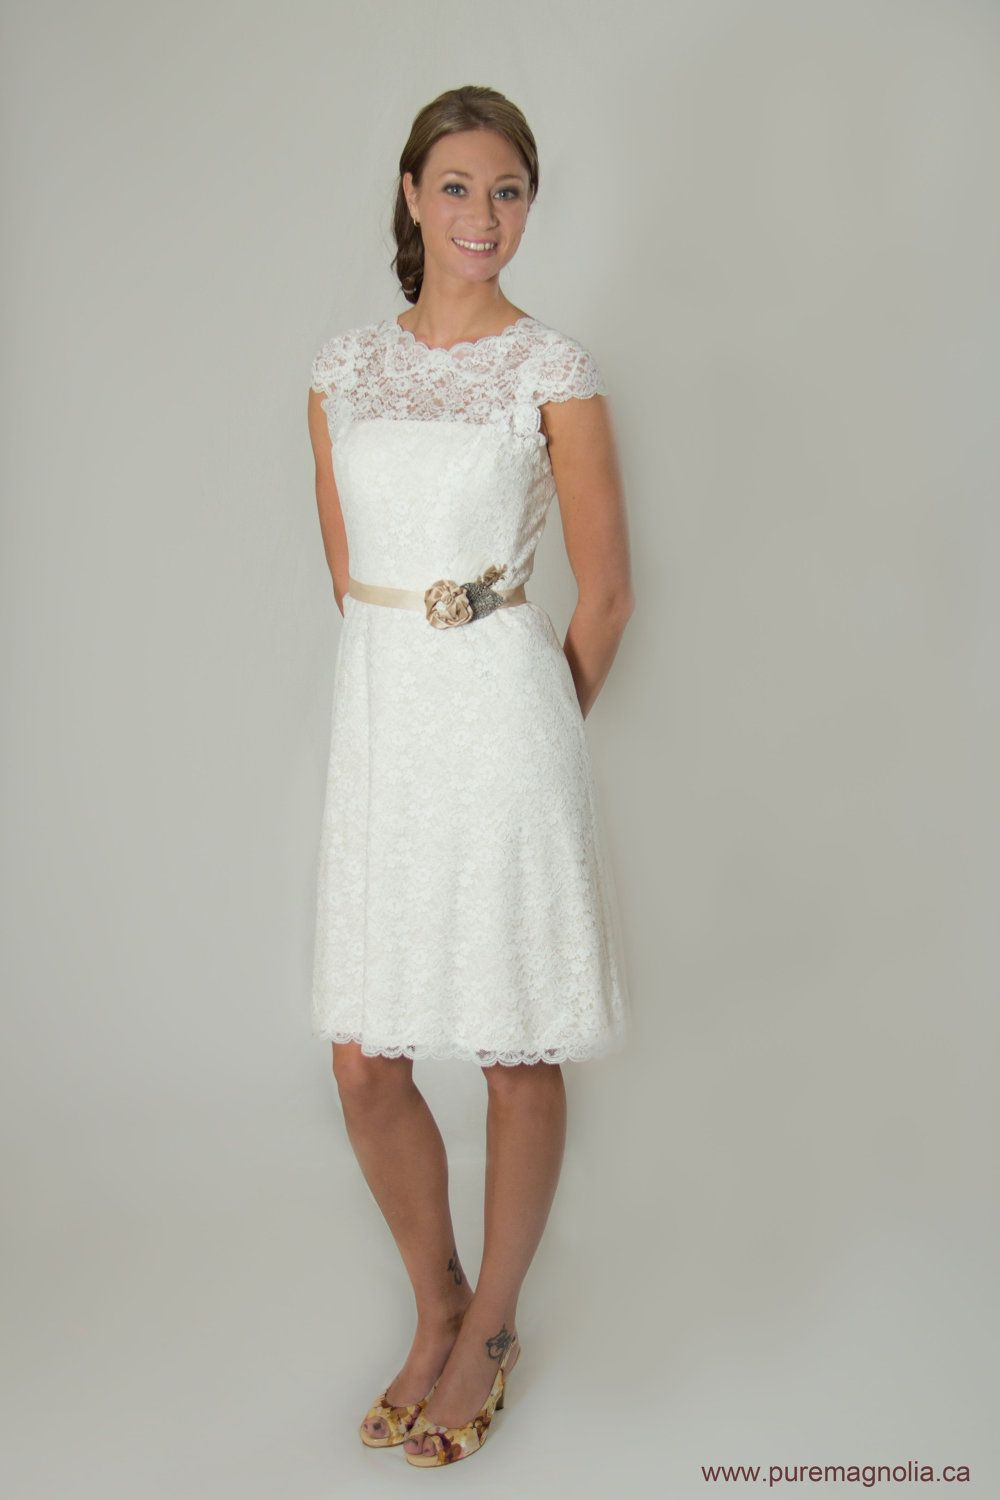 Rehearsal dinner lace short wedding dress cap sleeves low back white